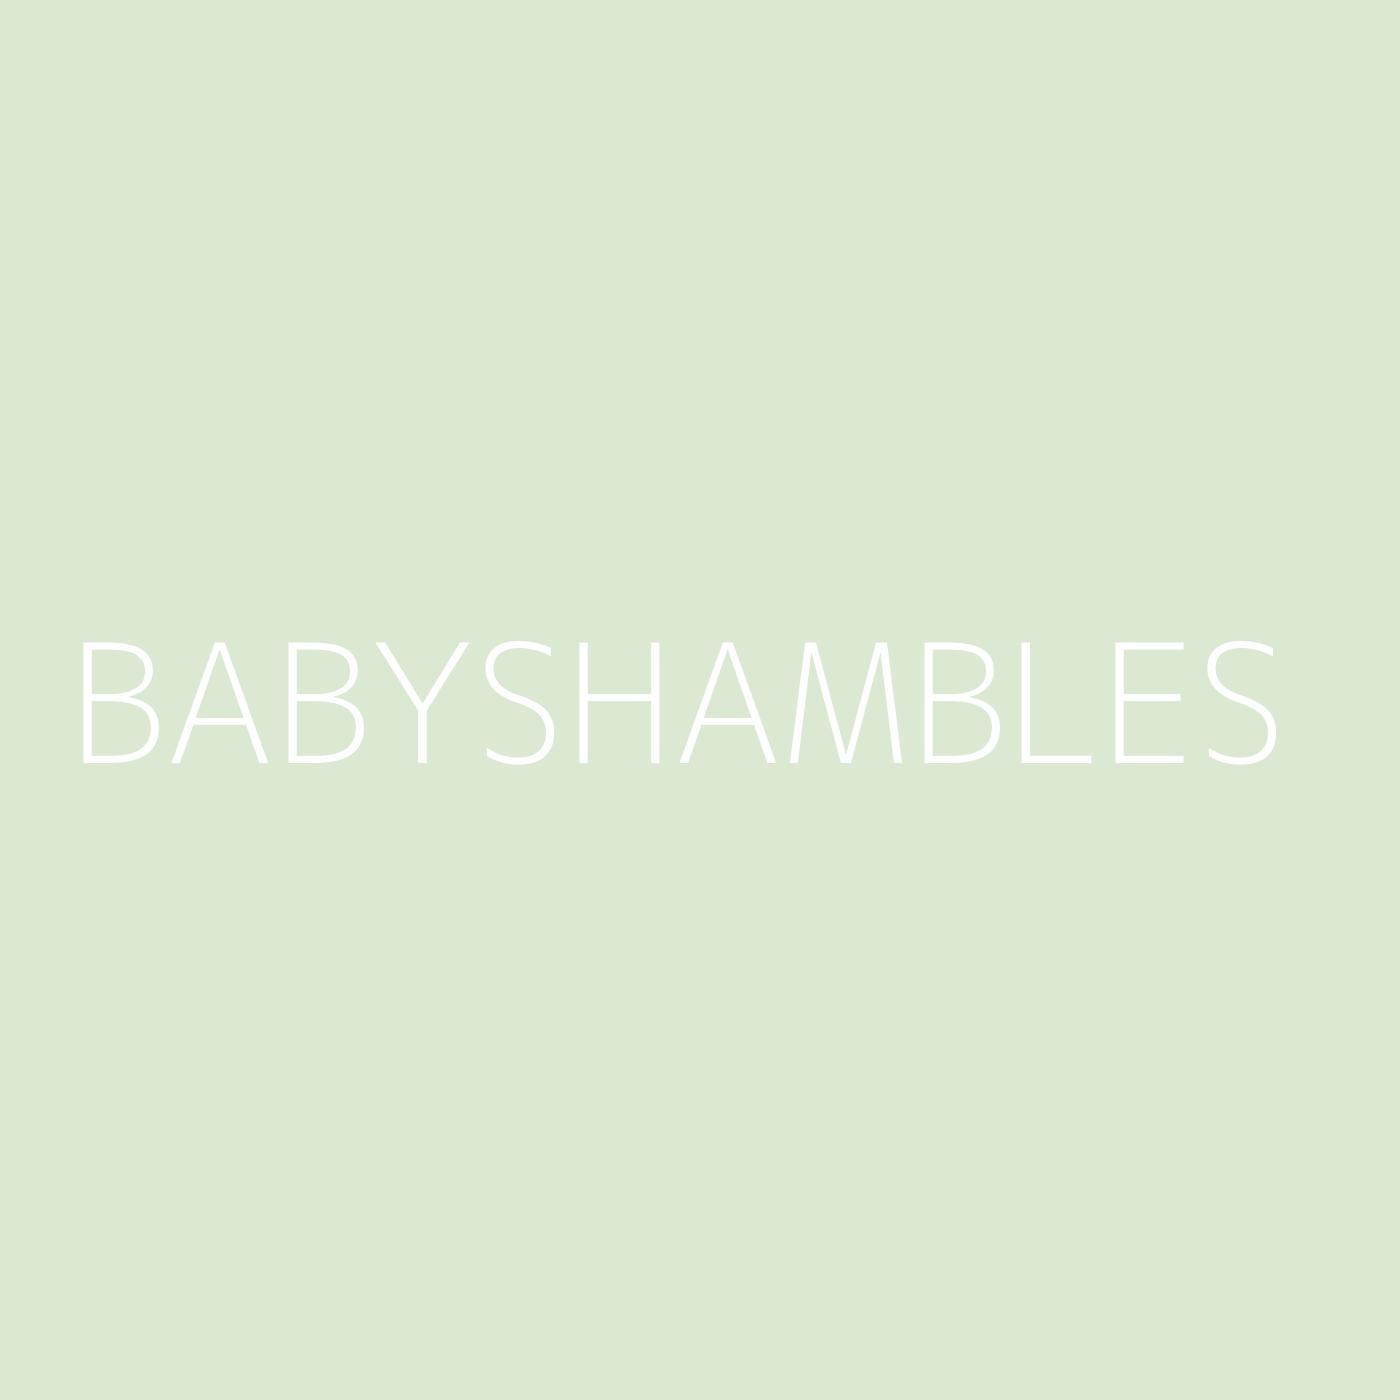 Babyshambles Playlist Artwork